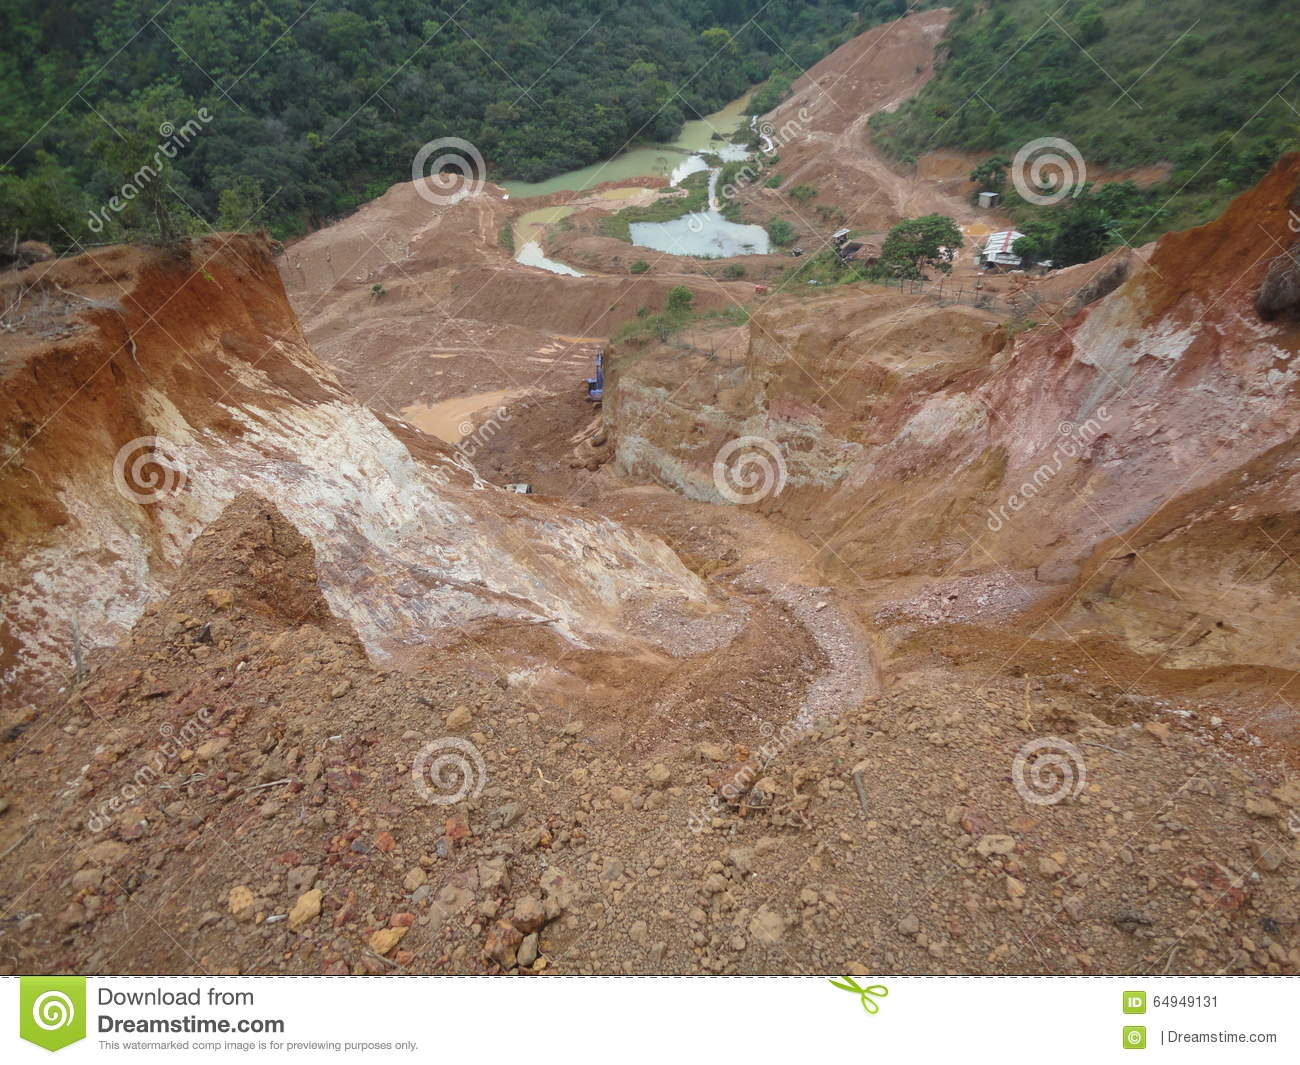 Kaolin Mines stock image. Image of cookware, ceramic - 64949131